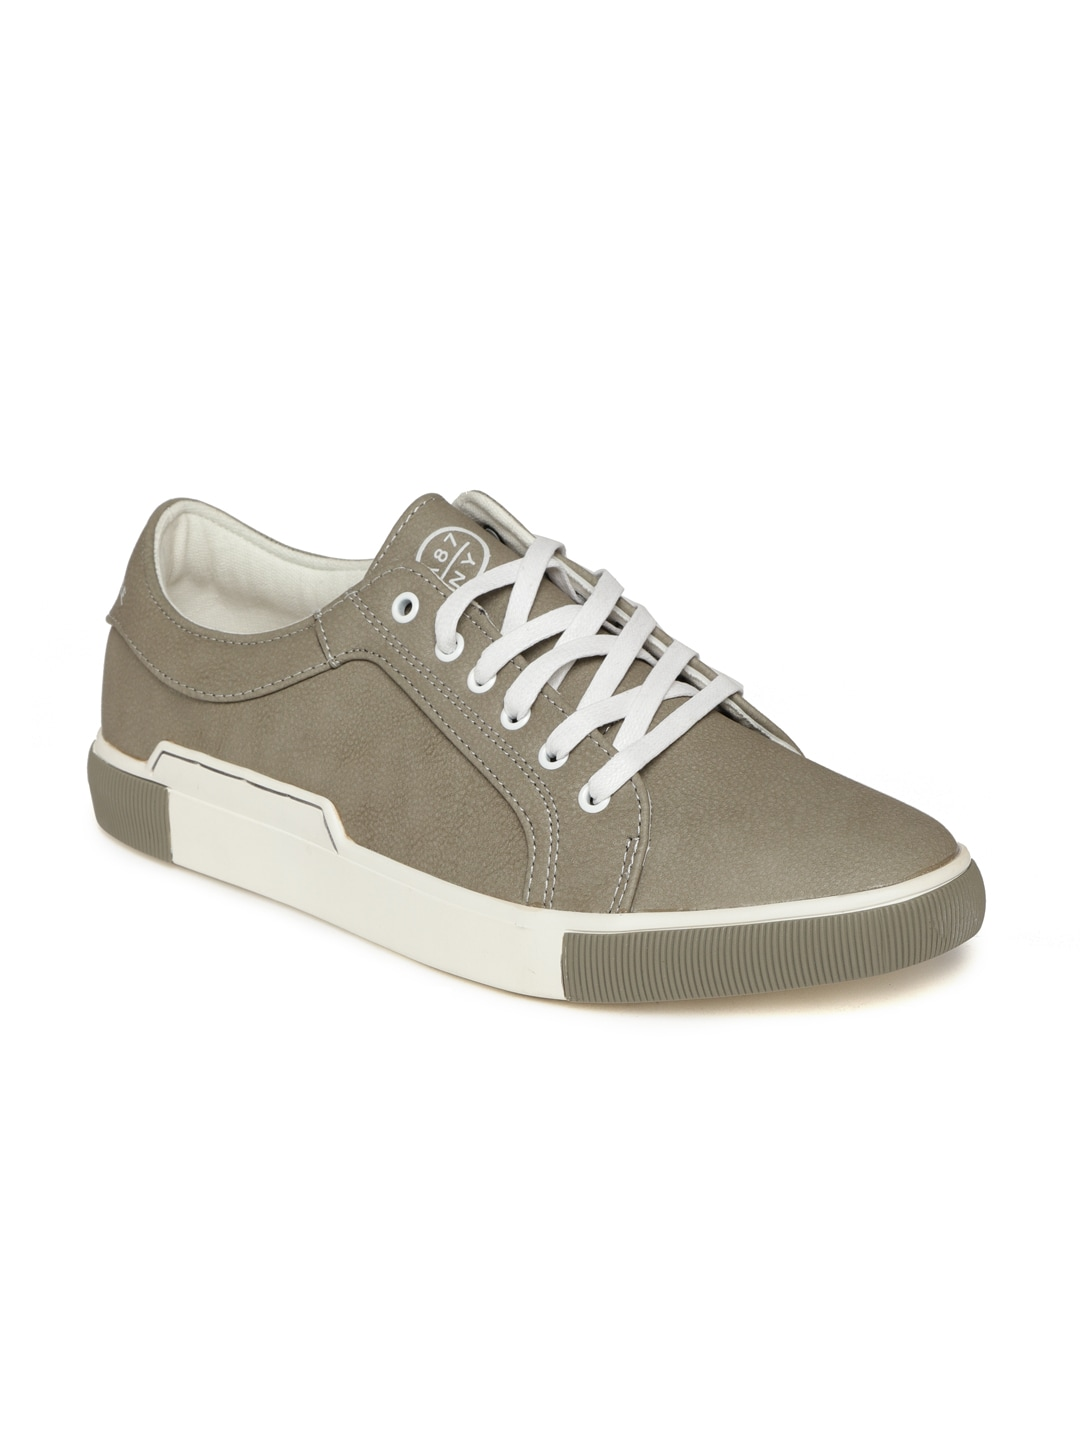 37c91ced946a6f Sneakers for Men - Buy Men Sneakers Shoes Online - Myntra